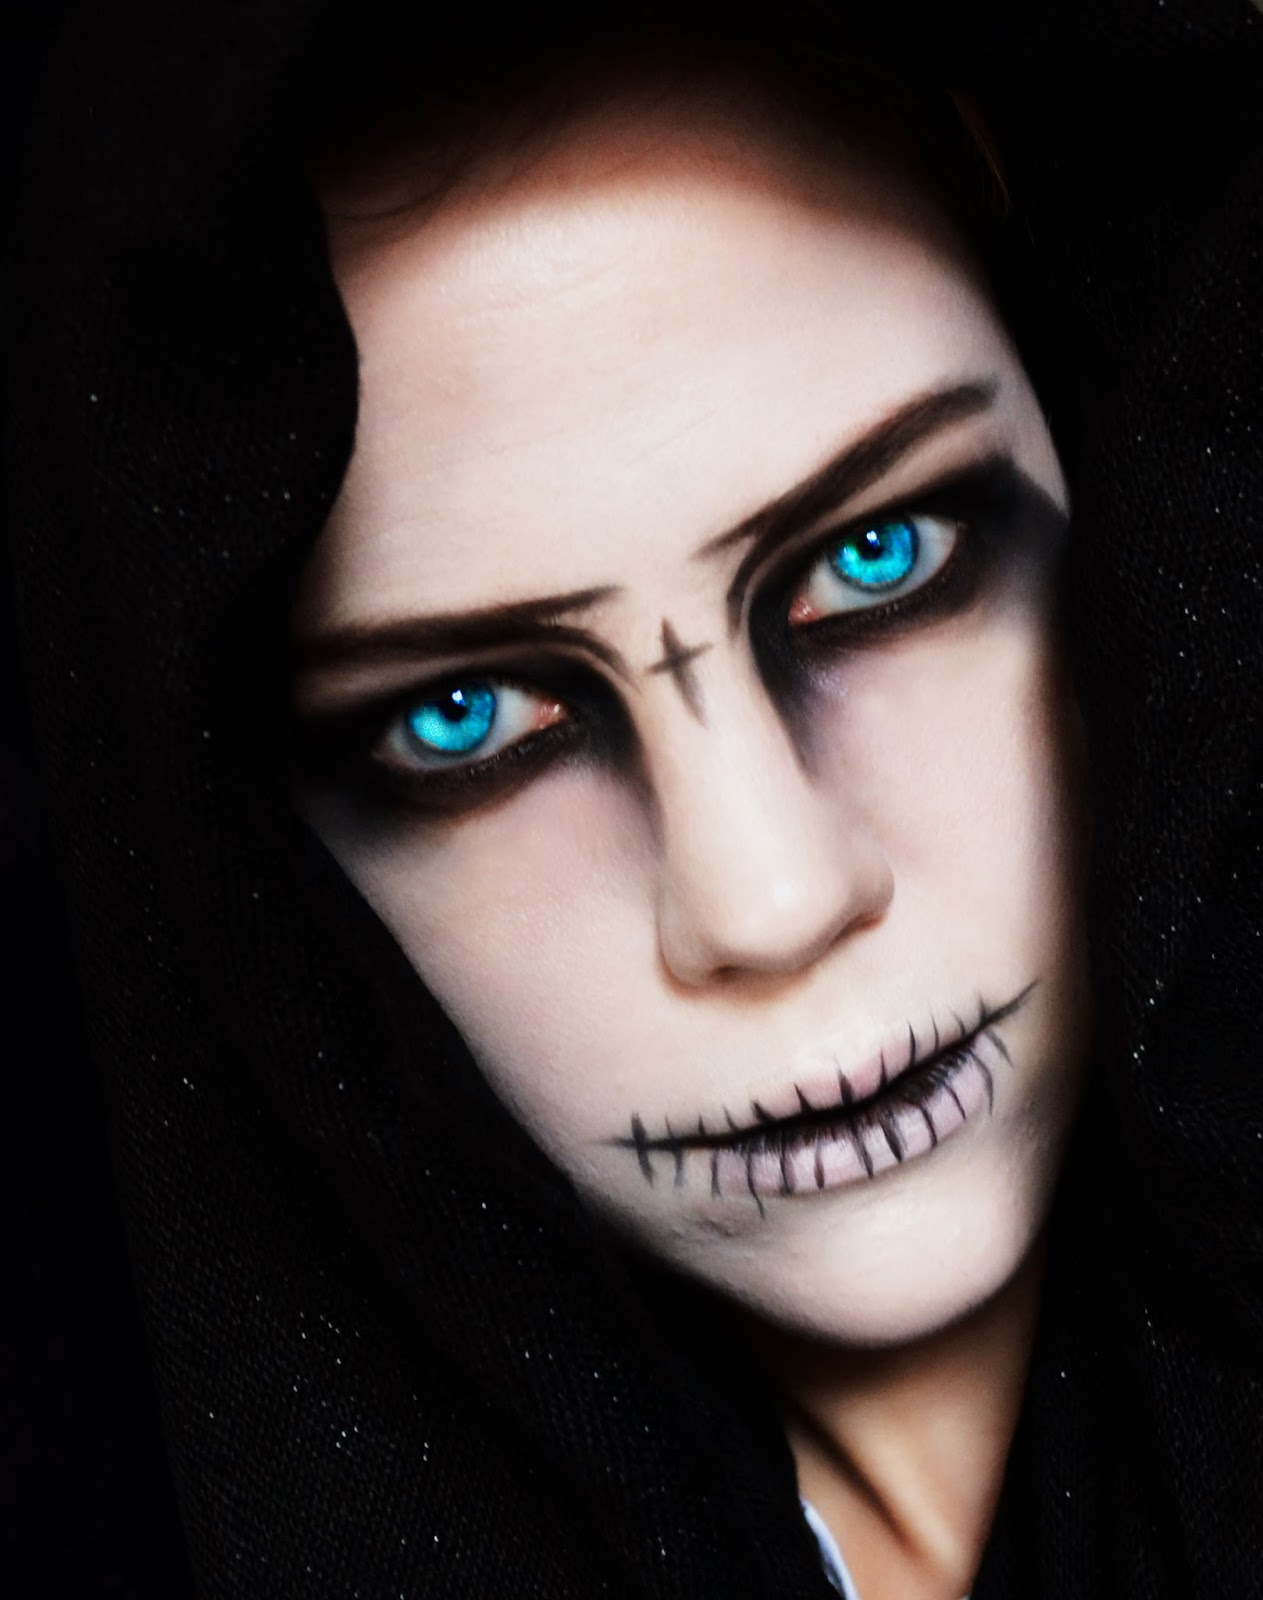 Grim Reaper Makeup Ideas - Mugeek Vidalondon